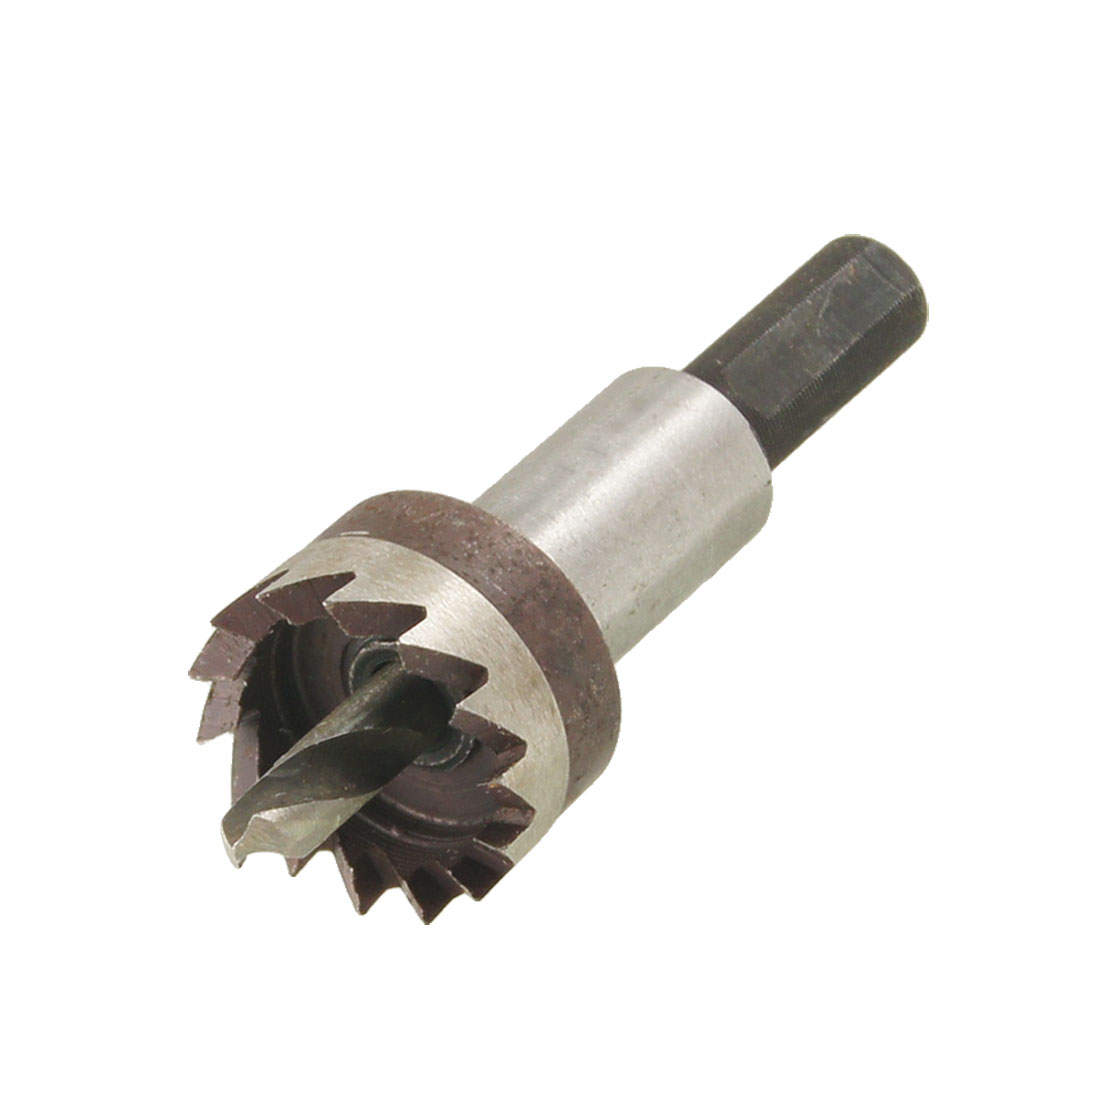 HSS 21mm Diameter Iron Cutting 5mm Twist Drill Bit Hole Saw Tool